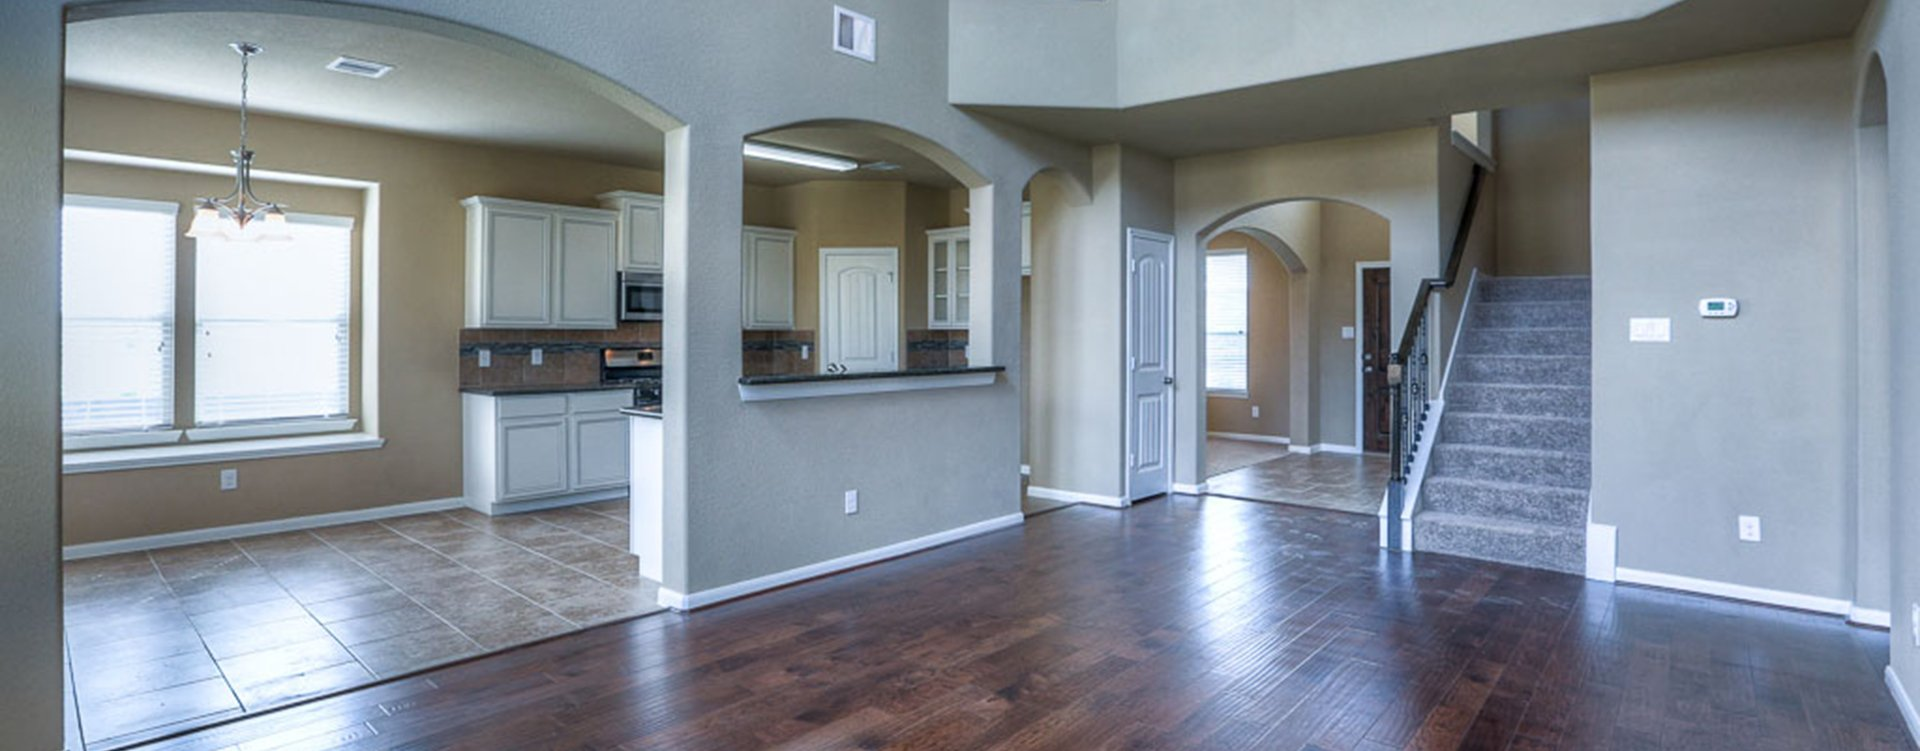 Living room area at new residence at Cypress Oaks in Katy TX